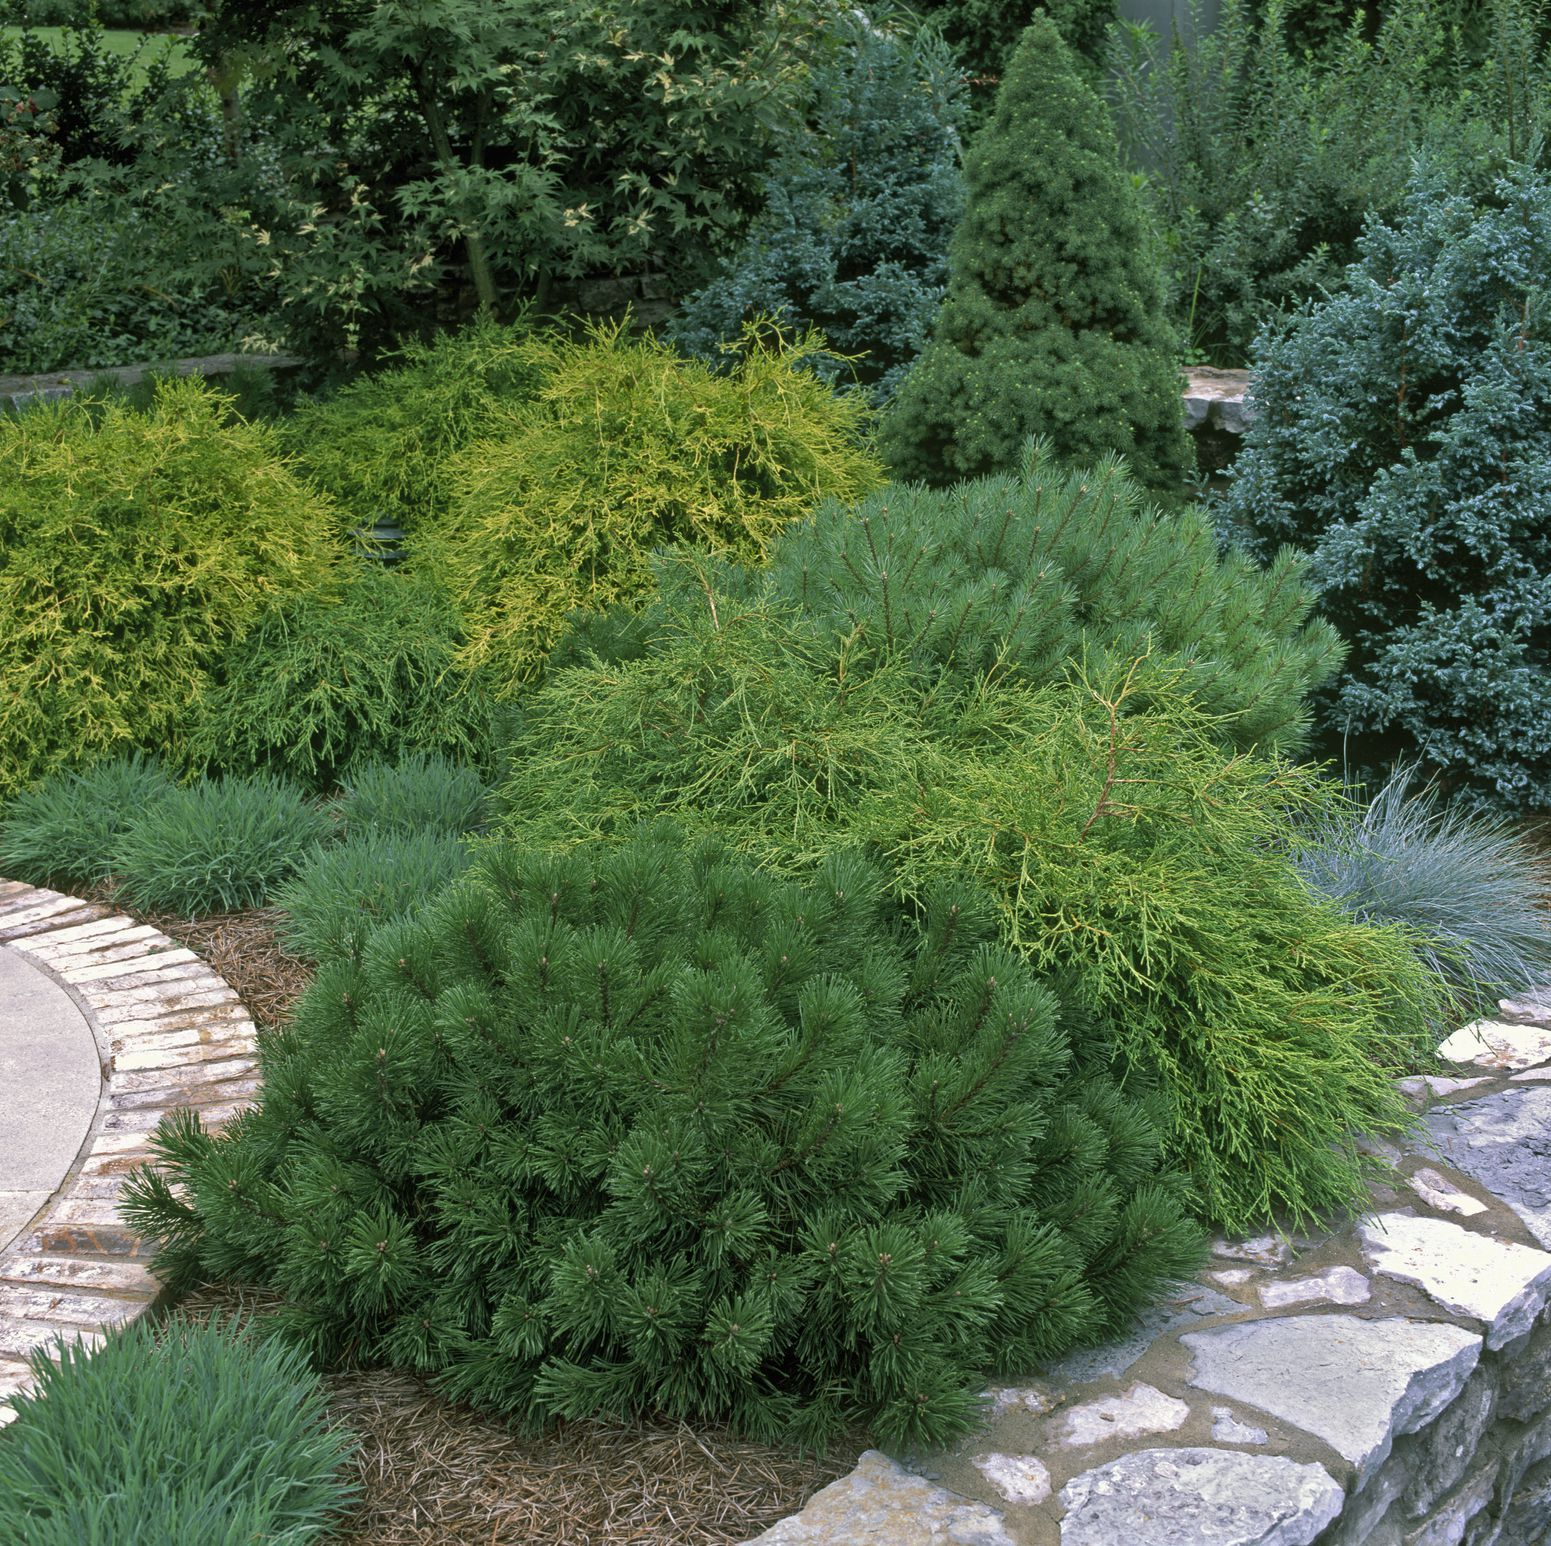 Here Are the Best Evergreens for Adding YearRound Beauty to Your Backyard is part of Evergreen bush, Evergreen shrubs, Small evergreen shrubs, Dwarf evergreen shrubs, Evergreen flowers, Evergreen landscape front yard - Every single garden needs these evergreen bushes